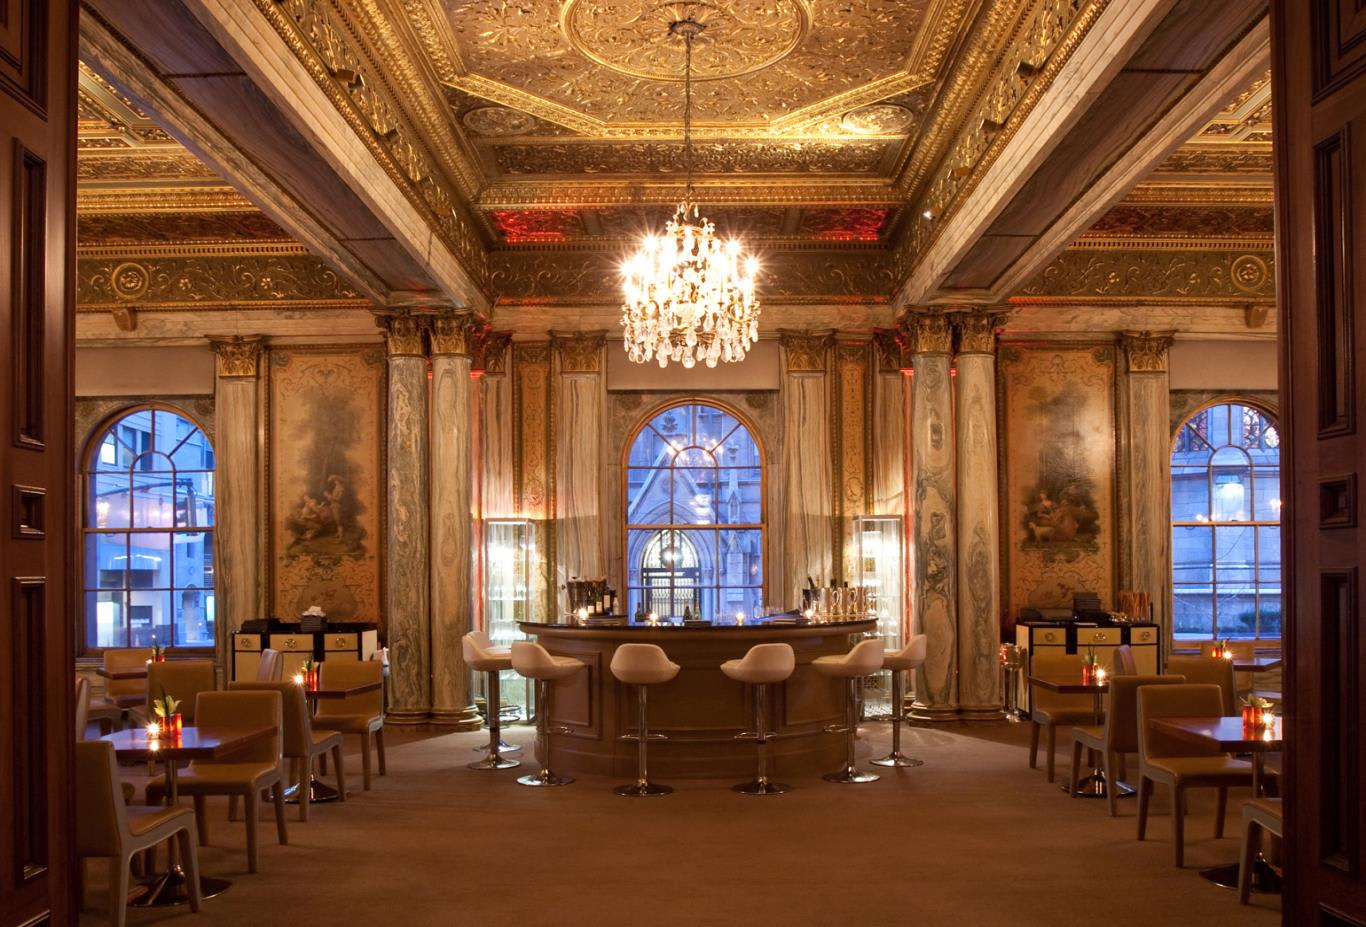 The Madison Room Entrance